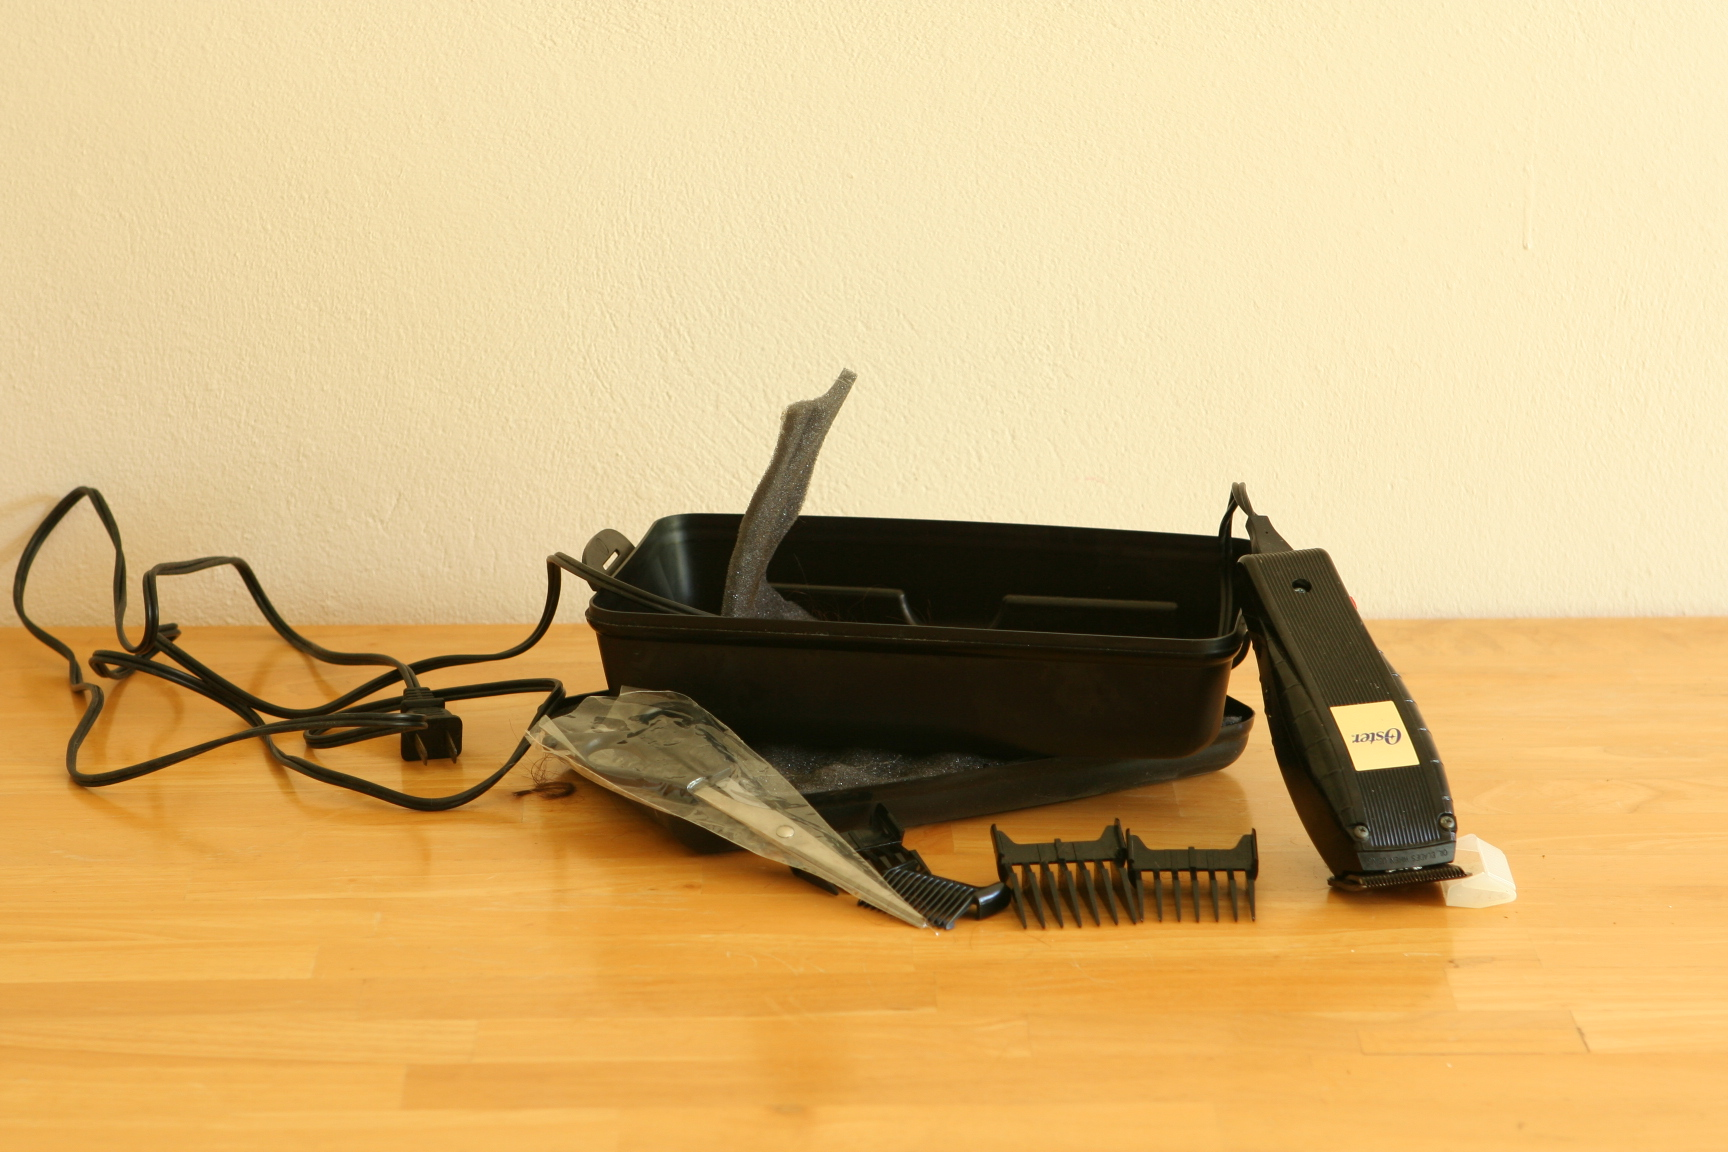 Hair Clippers: $15 [SOLD]